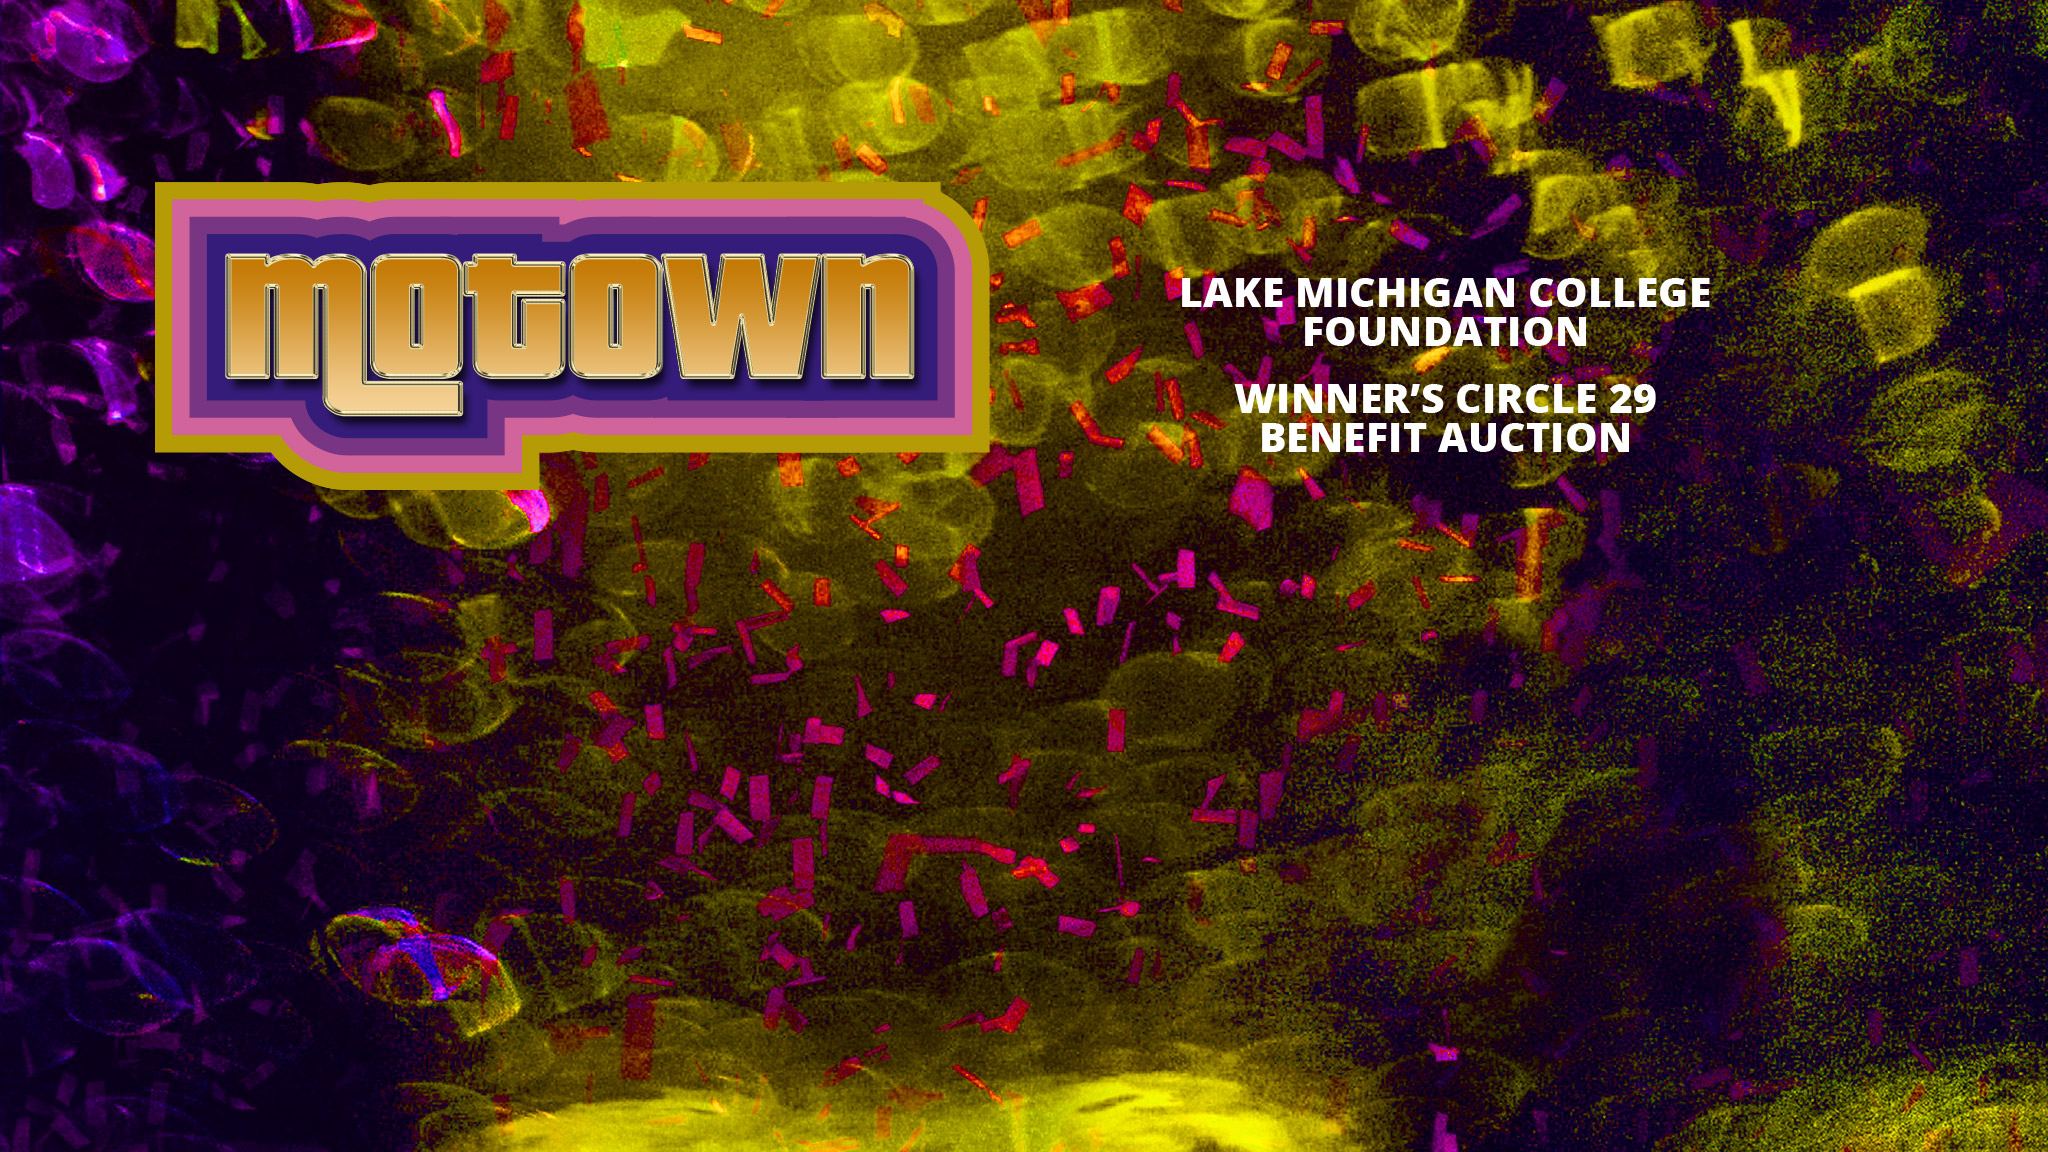 Motown: LMC Foundation Winner's Circle 29 Benefit Auction